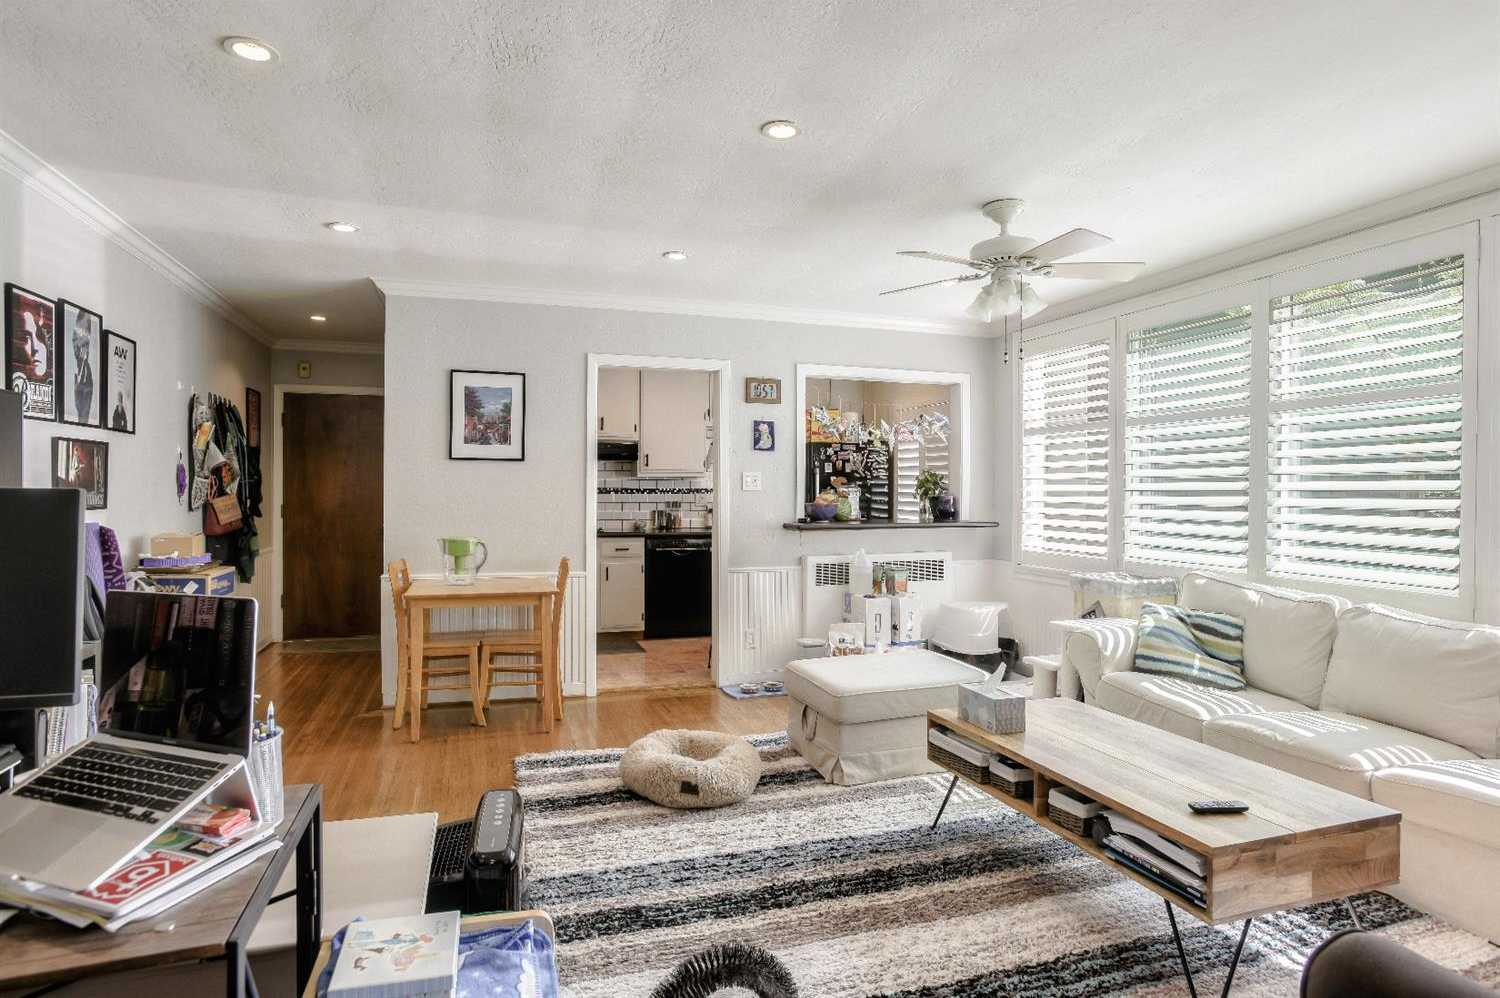 $524,999 - 1Br/1Ba -  for Sale in San Mateo